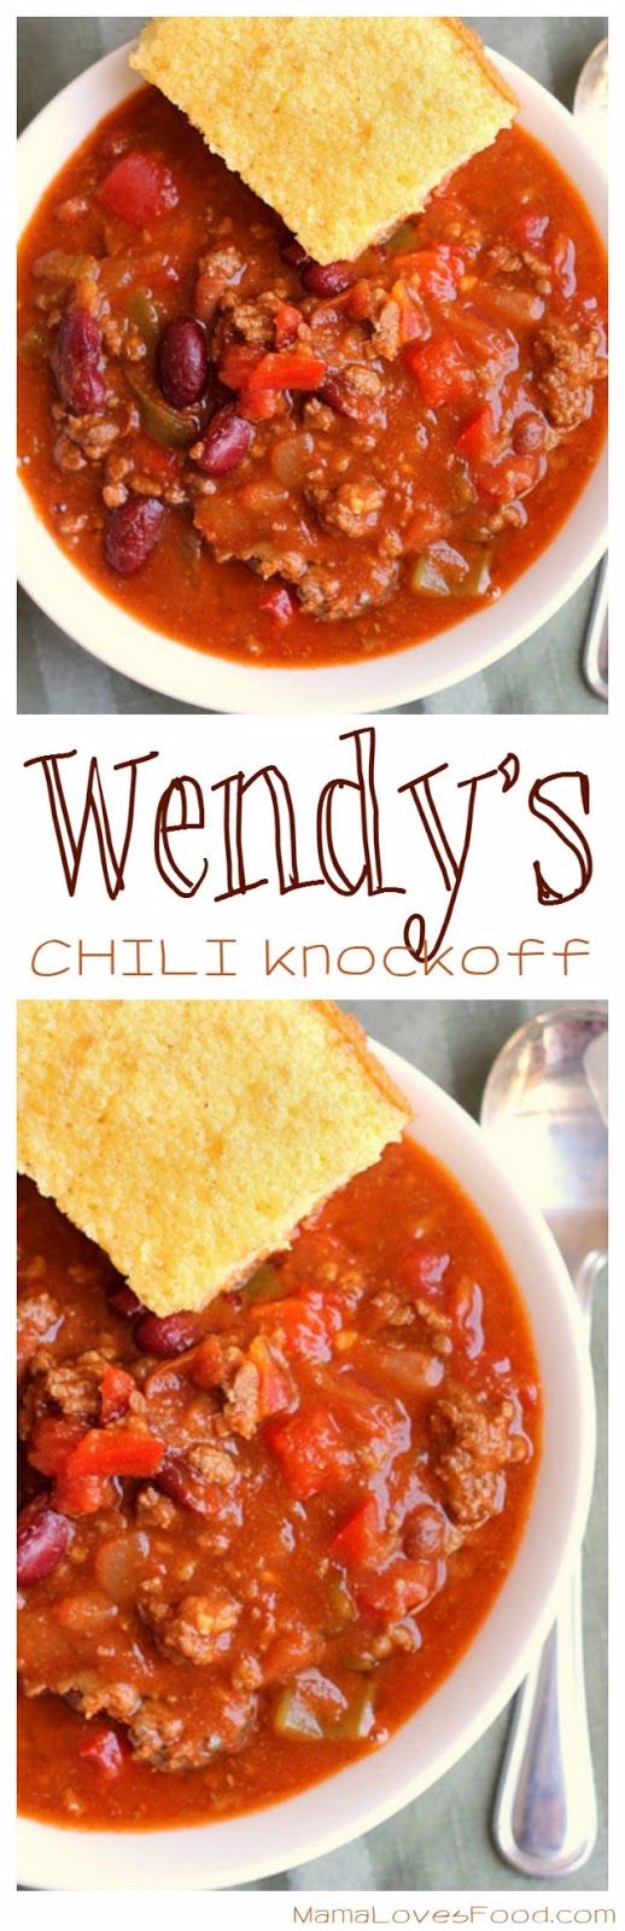 Best Copycat Recipes From Top Restaurants - Wendy's Chili Knock Off - Awesome Recipe Knockoffs and Recipe Ideas from Chipotle Restaurant, Starbucks, Olive Garden, Cinabbon, Cracker Barrel, Taco Bell, Cheesecake Factory, KFC, Mc Donalds, Red Lobster, Panda Express #recipes #copycat #dinnerideas